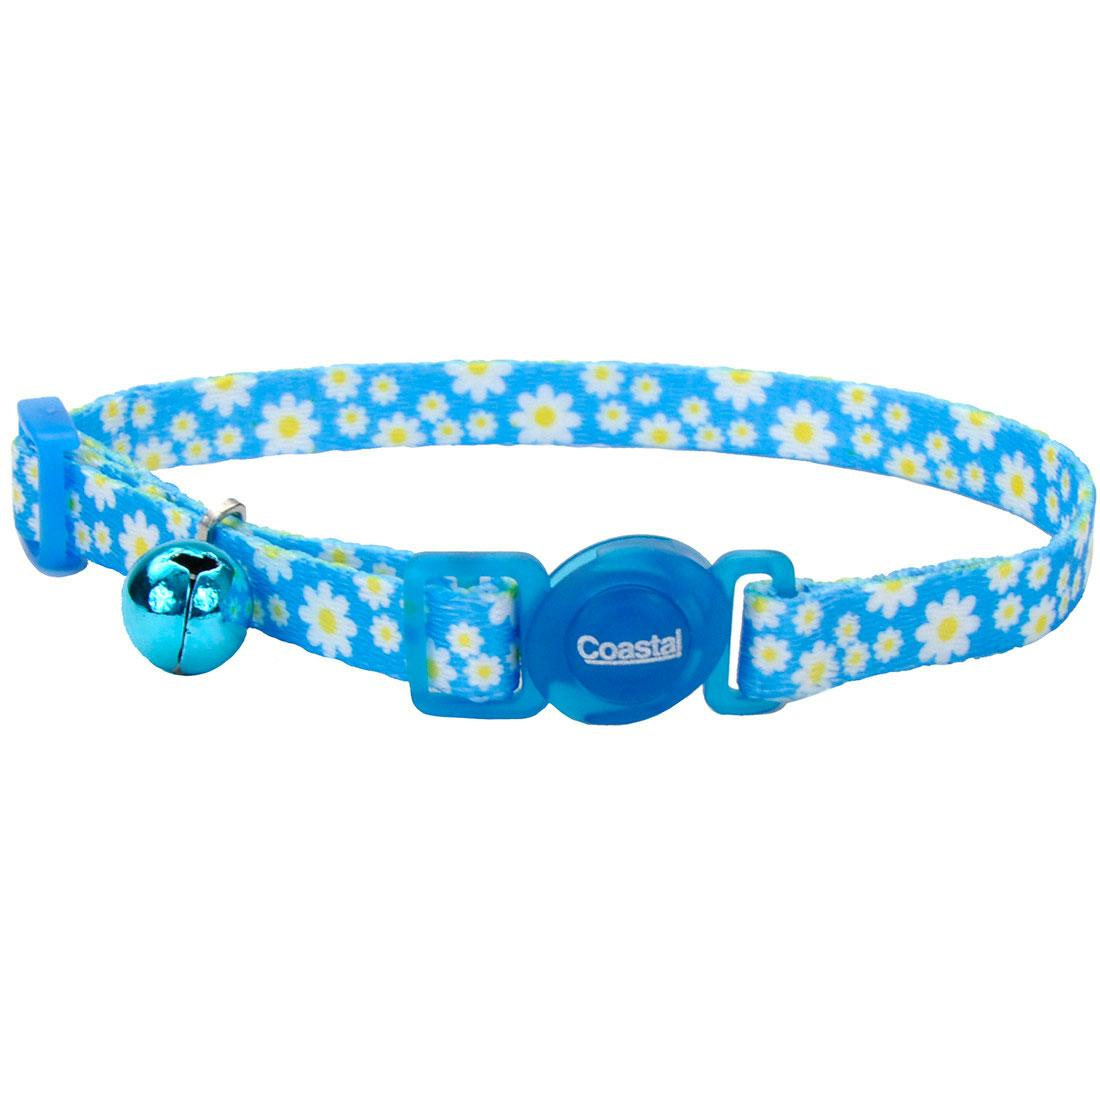 Safe Cat Fashion Adjustable Breakaway Cat Collar, Daisy Blue, 3/8-in x 8-12-in (Size: 3/8-in x 8-12-in) Image